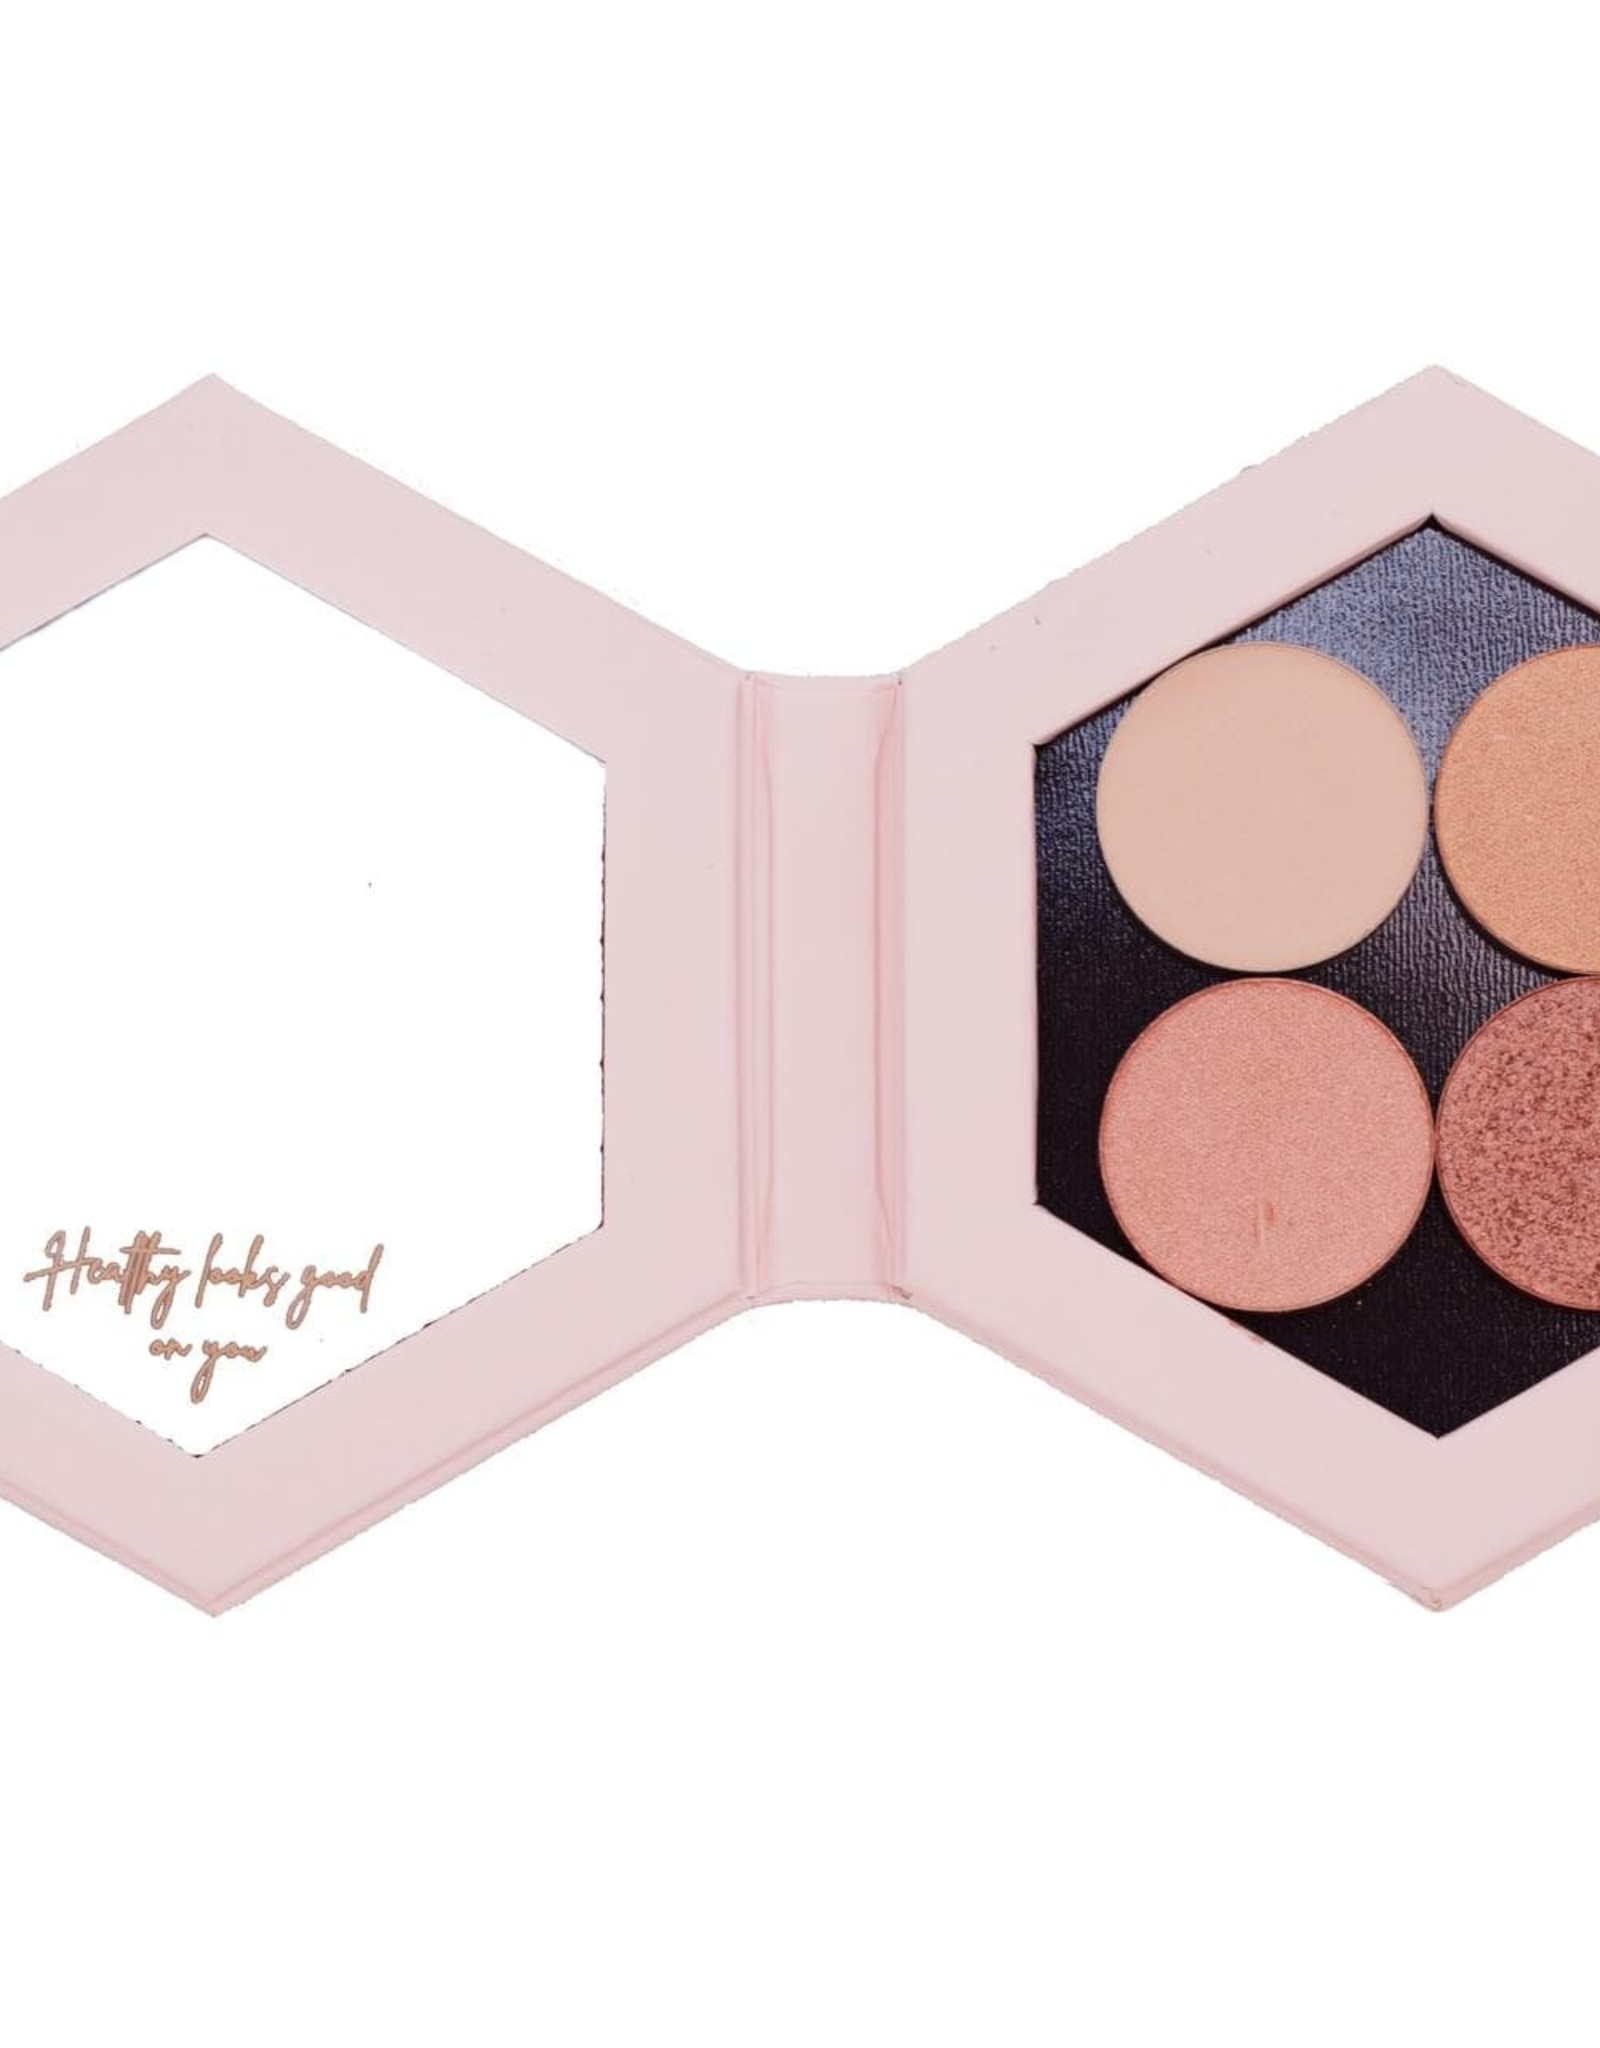 CentpurCent Refillable Compact Eye Shadow Lingerie  - CentpurCent